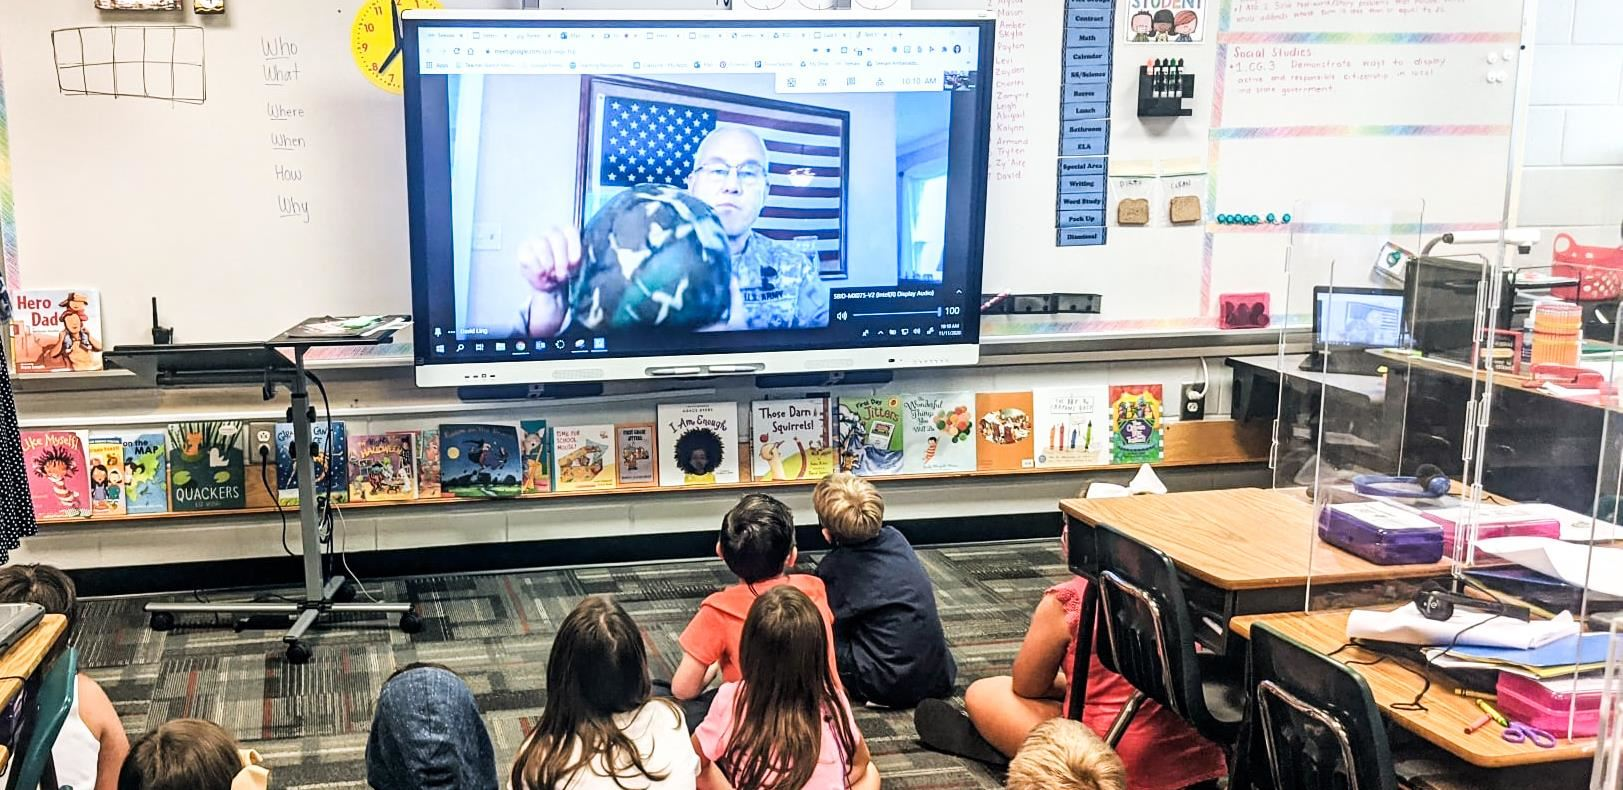 HBE students listen to a service member speaking on a Smartboard